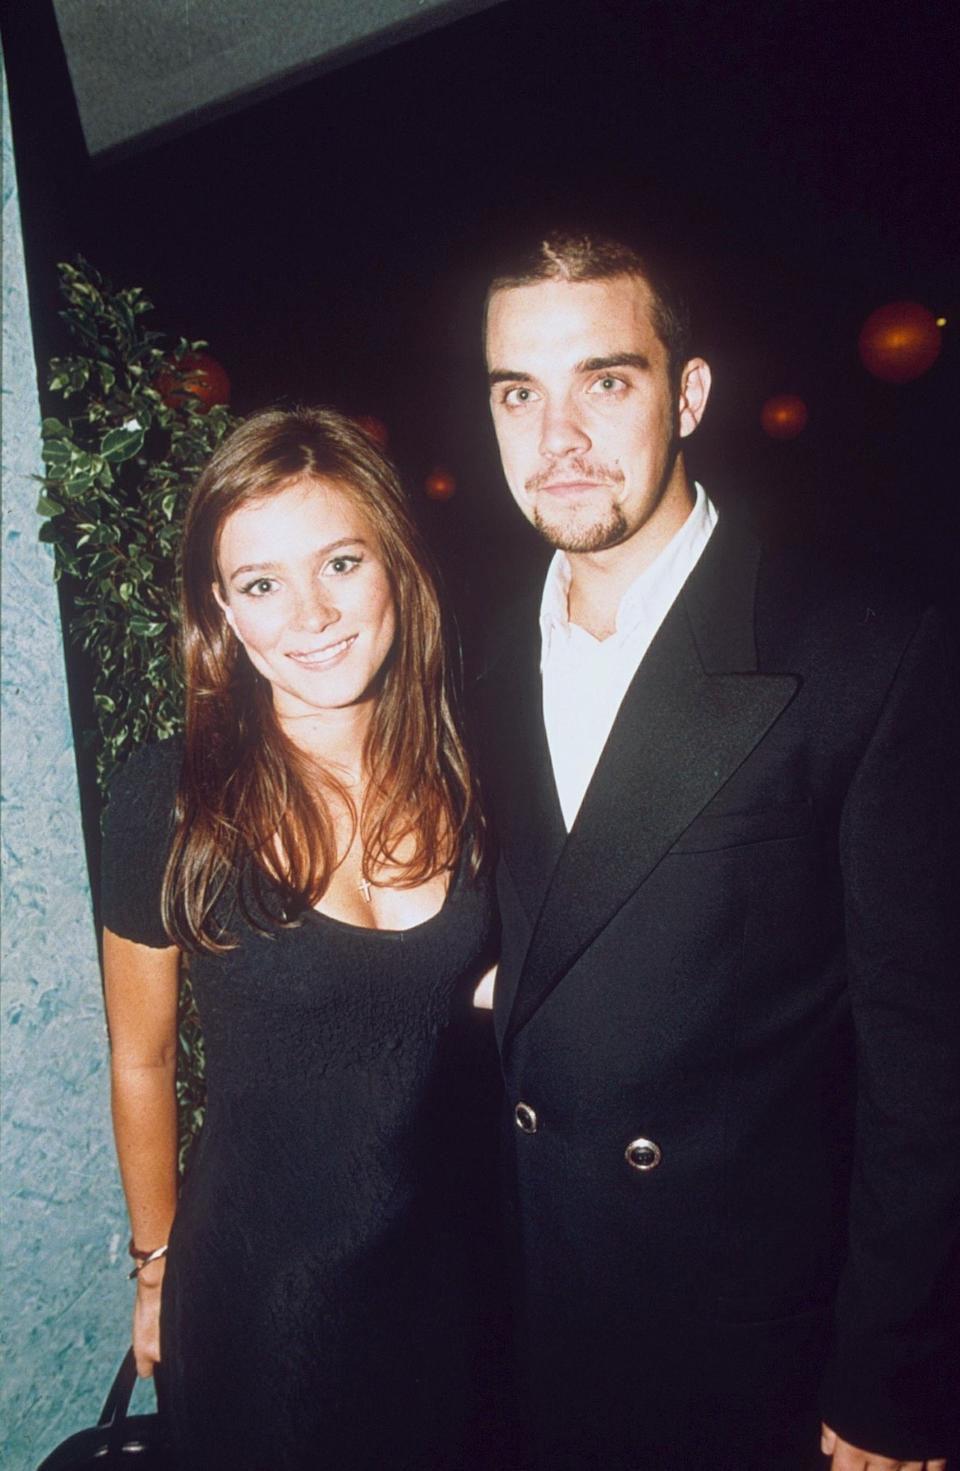 Given she'd go on to be nominated for a Golden Globe, it's quite sweet that Anna Friel was the big winner at the first ever NTAs back in 1995, for her performance in 'Brookside'.<br /><br />Here she is at the ceremony with then-boyfriend Robbie Williams, still a year away from releasing his debut solo single, a cover of George Michael's 'Freedom'.